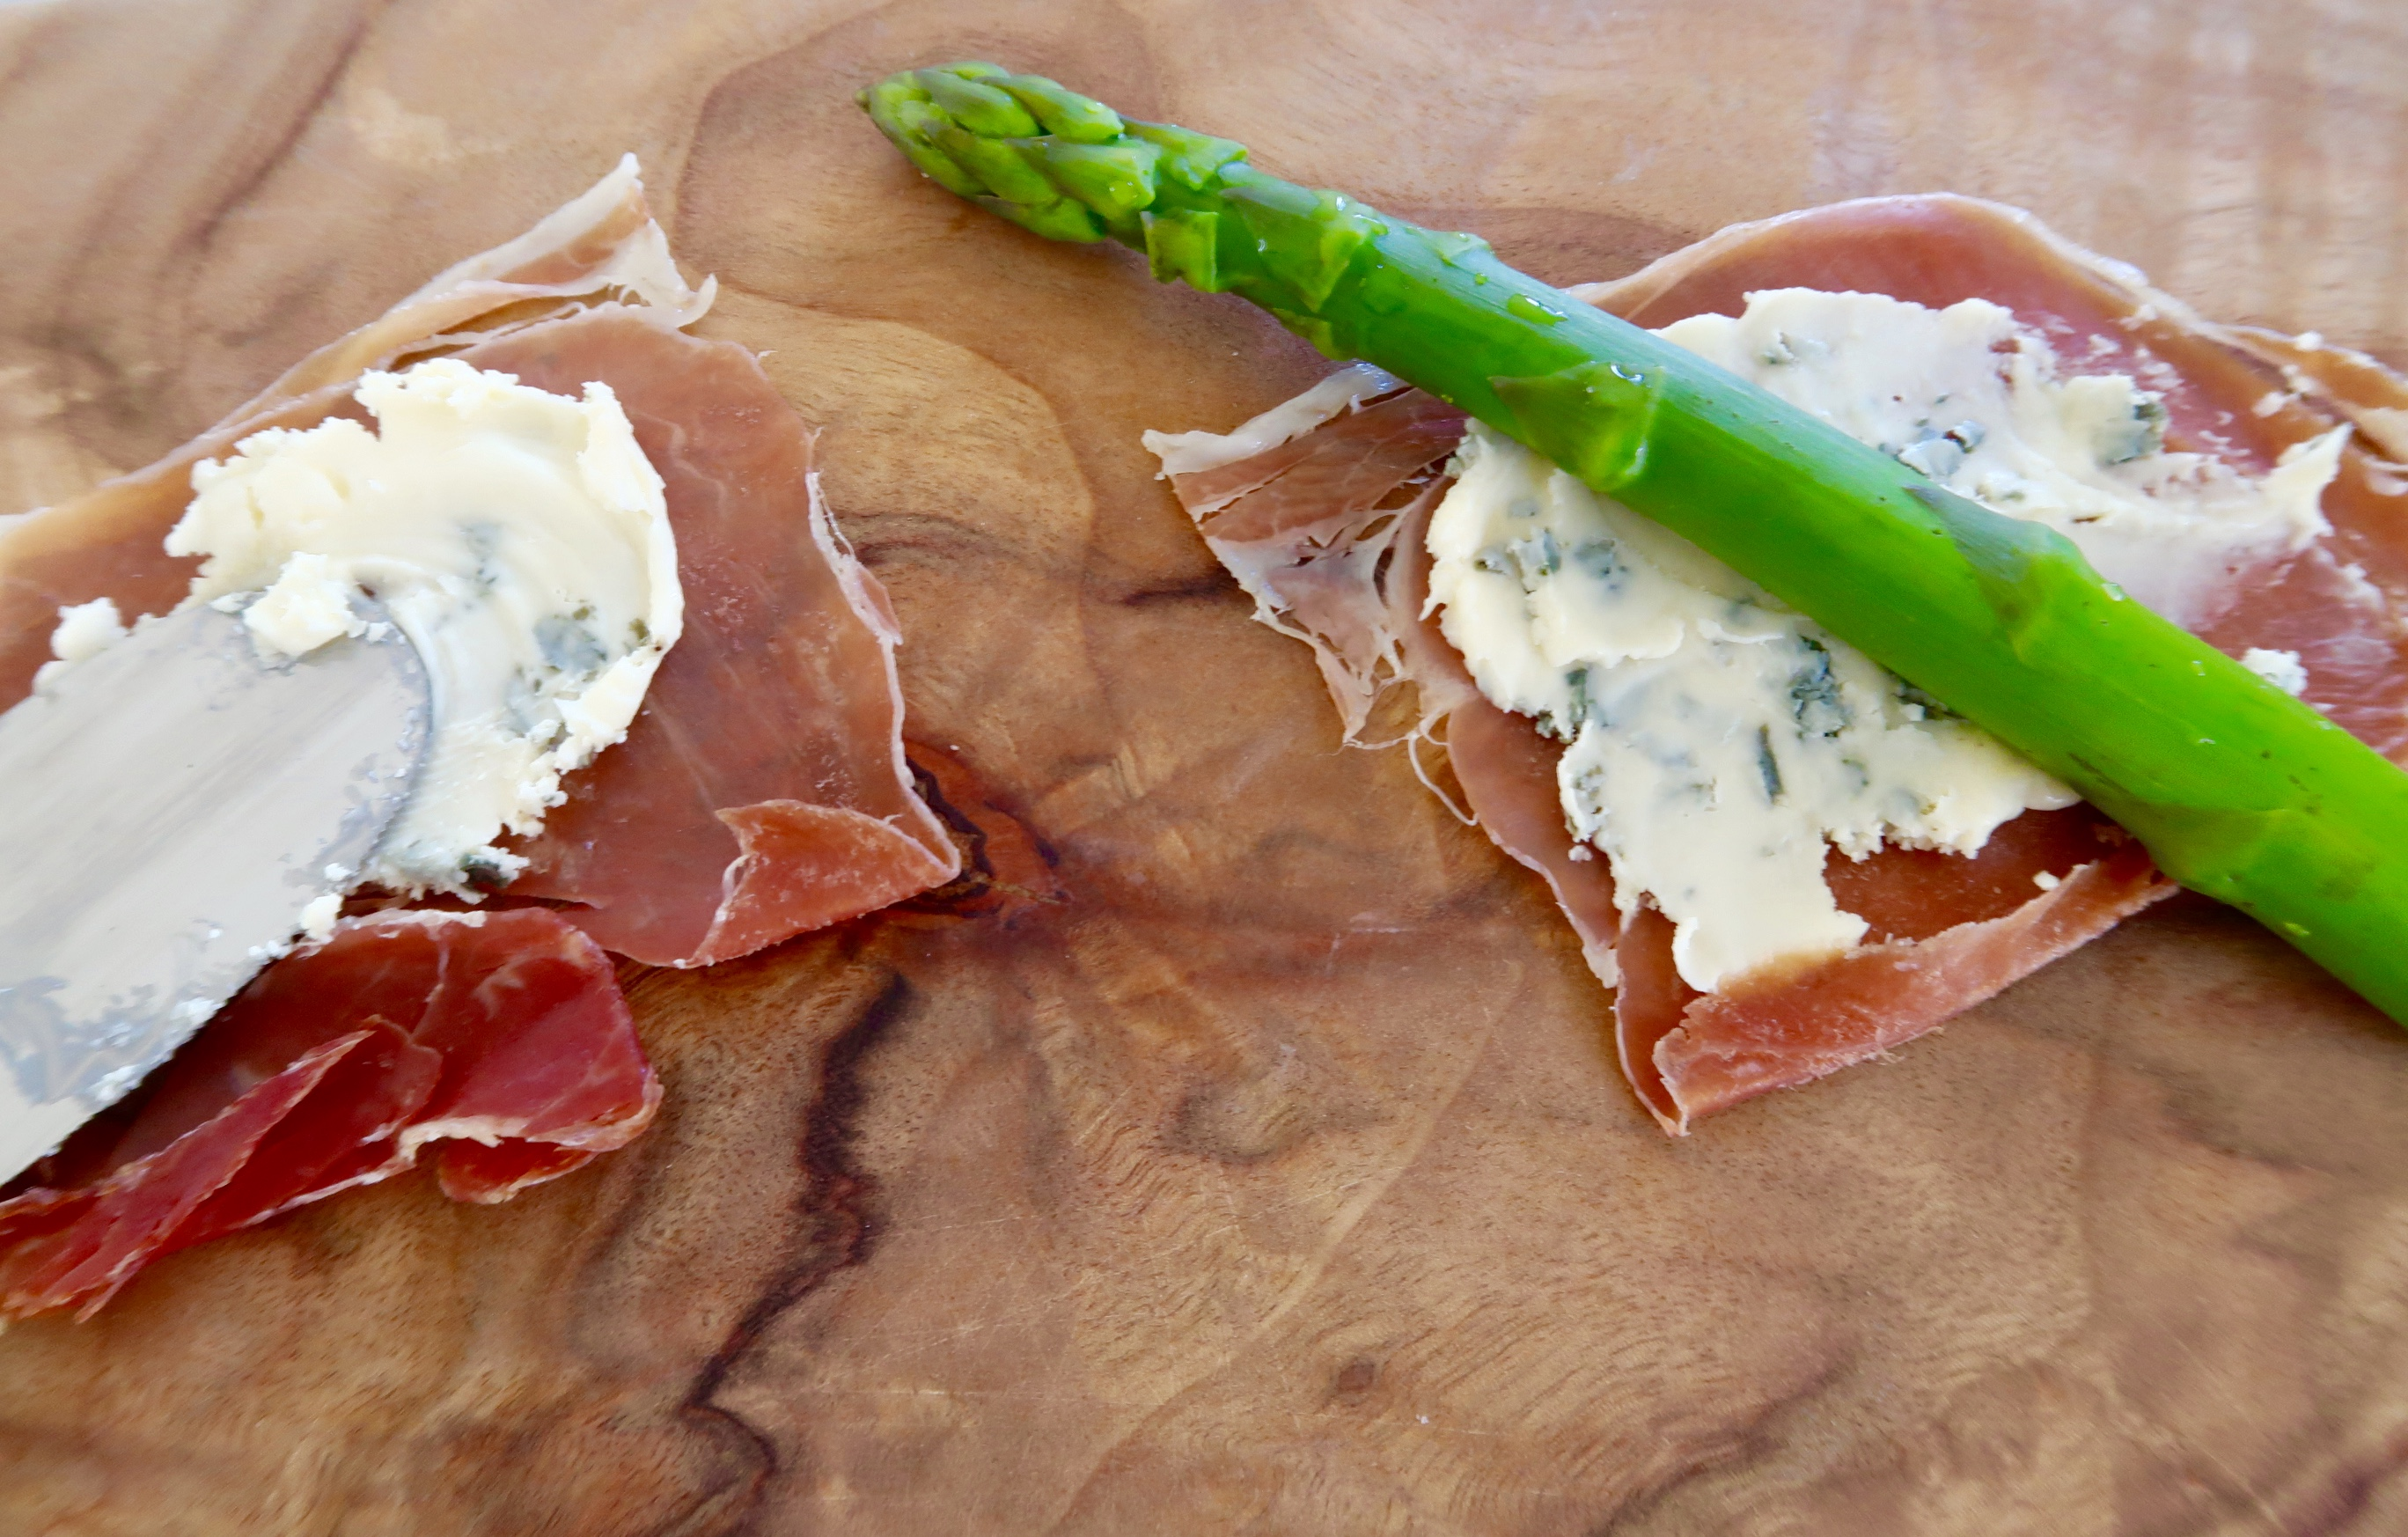 asparagus with prosciutto and blue cheese preparing on a wooden chopping board